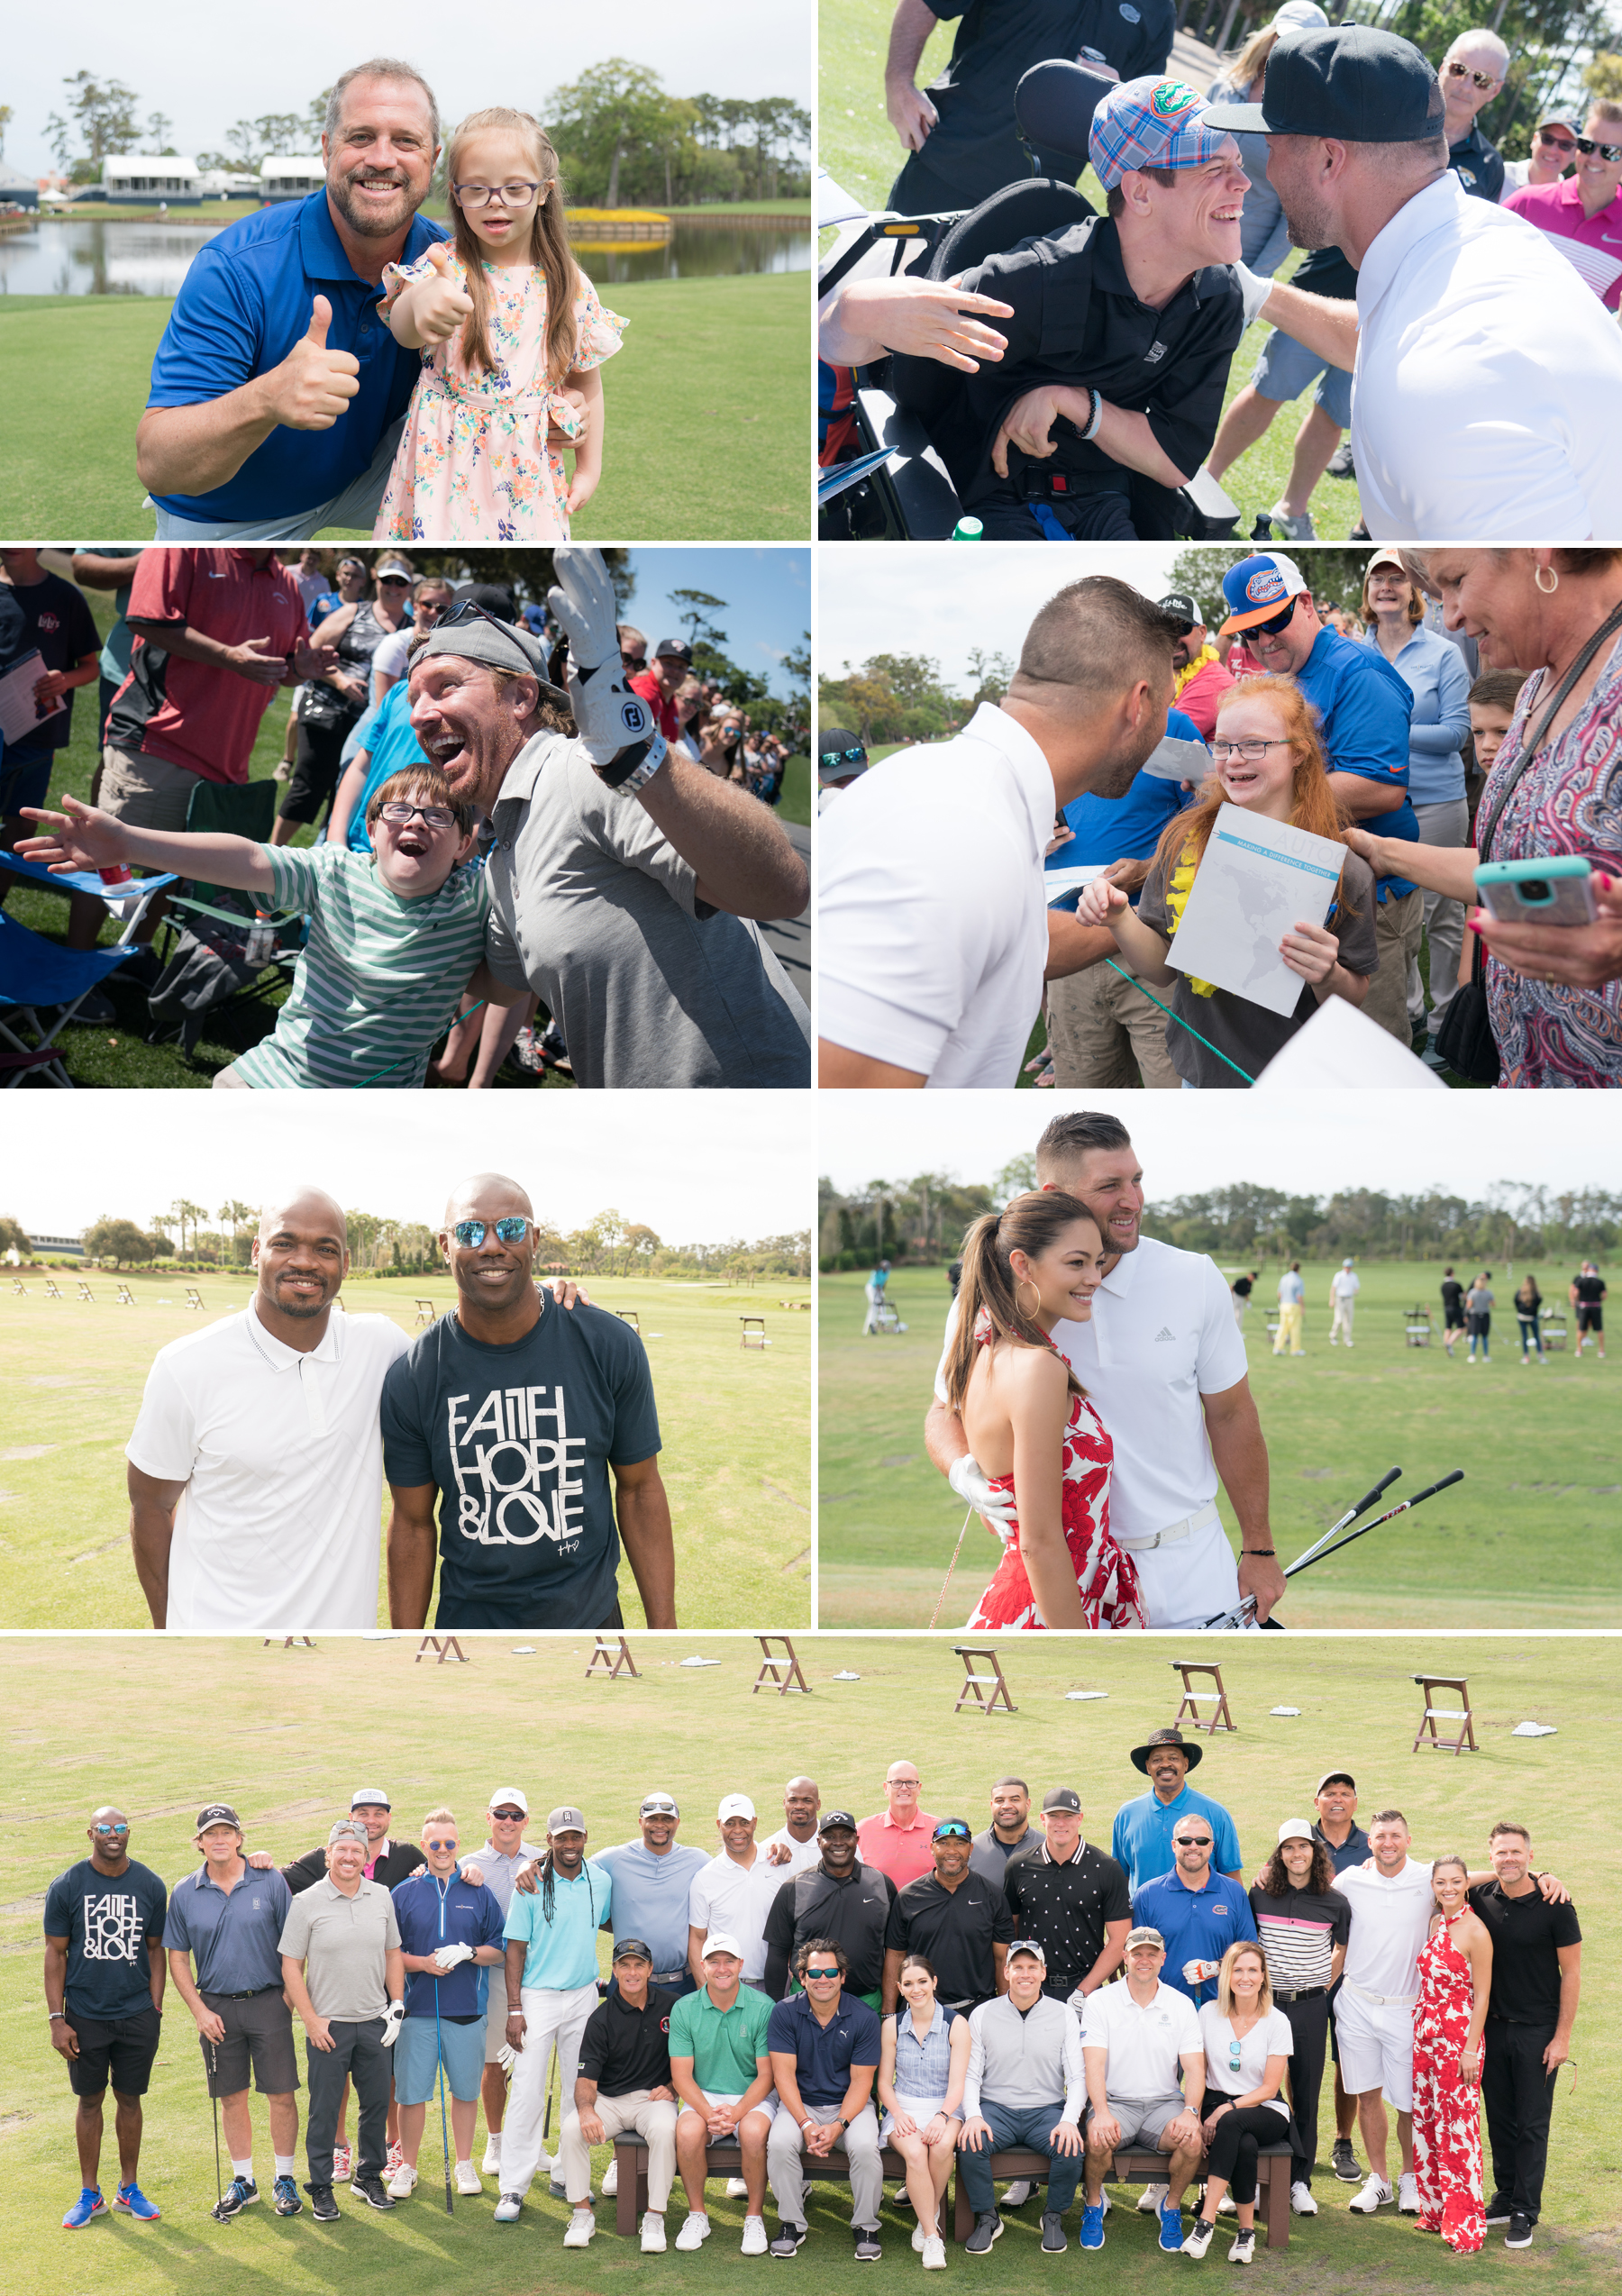 TPC Sawgrass Tim Tebow Celebrity Jensen Sutta Event Photography